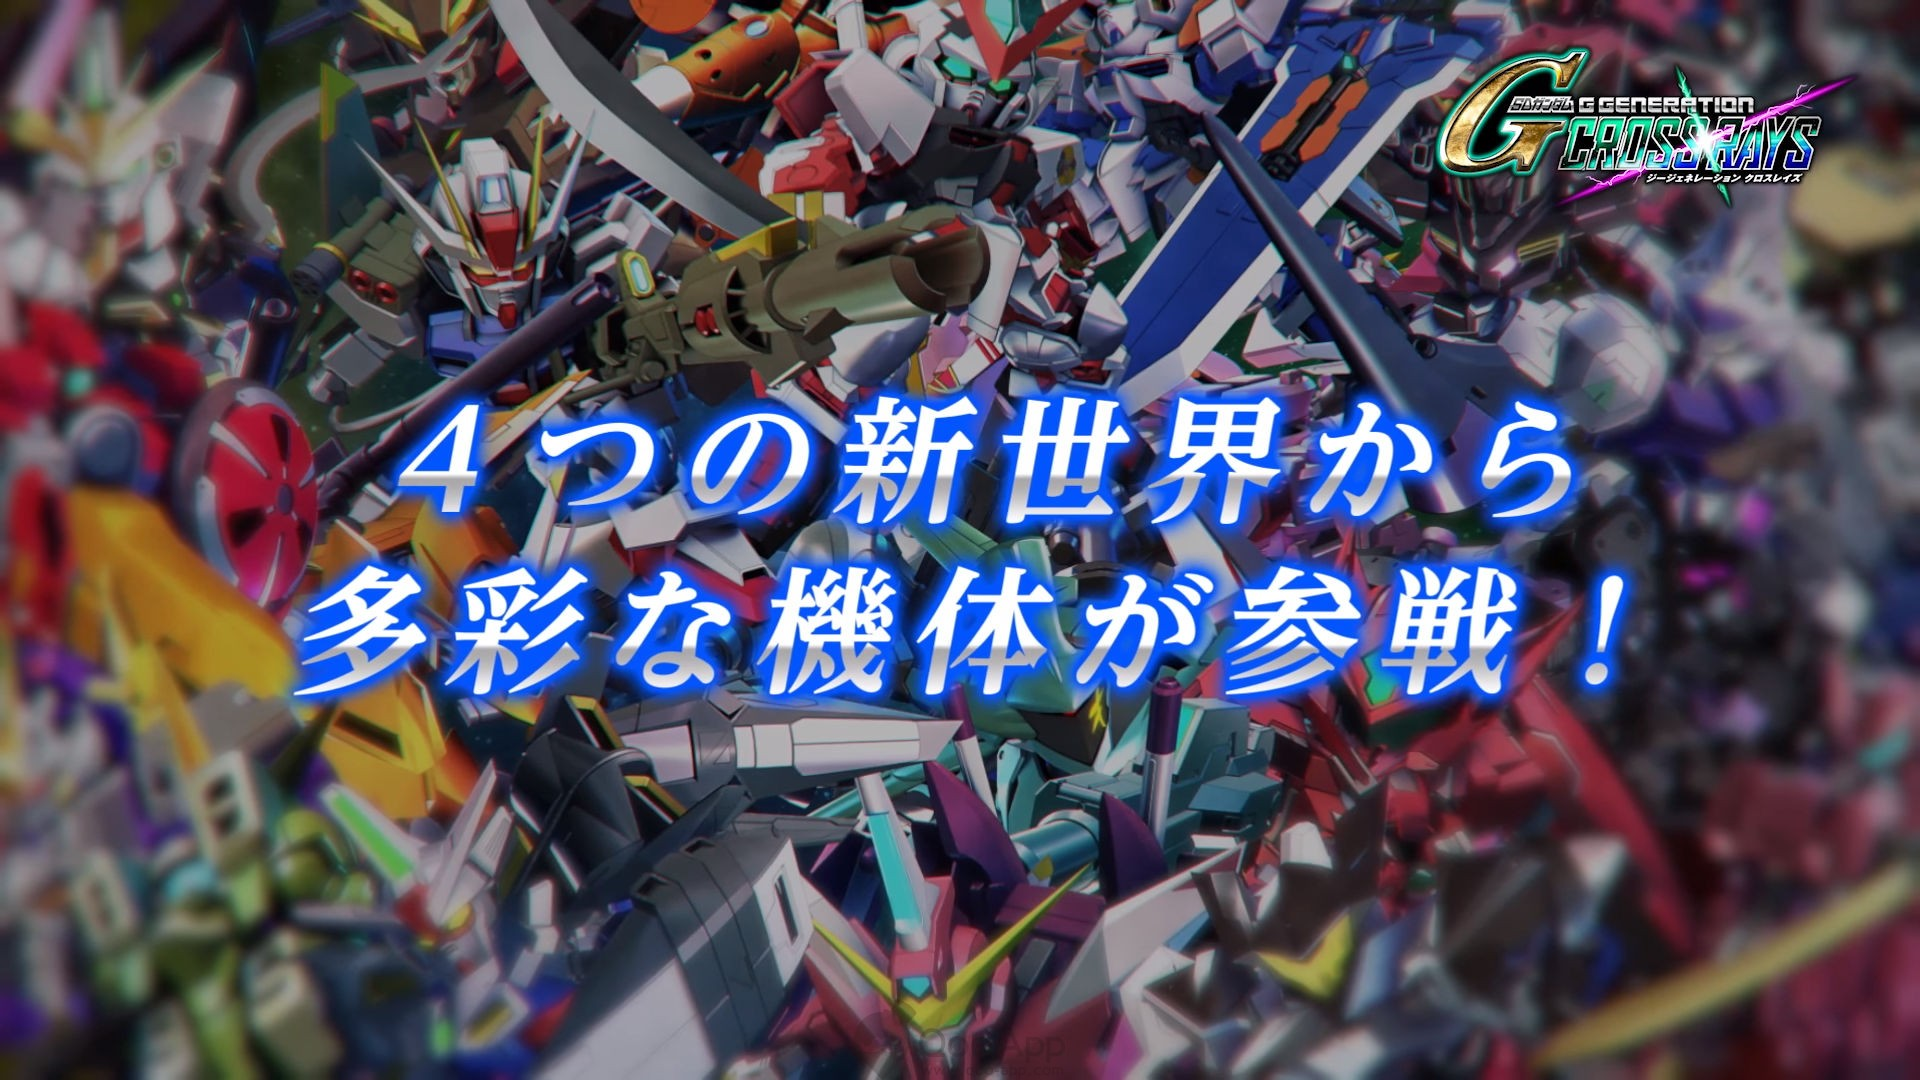 SD Gundam G Generation Cross Rays First PV Released